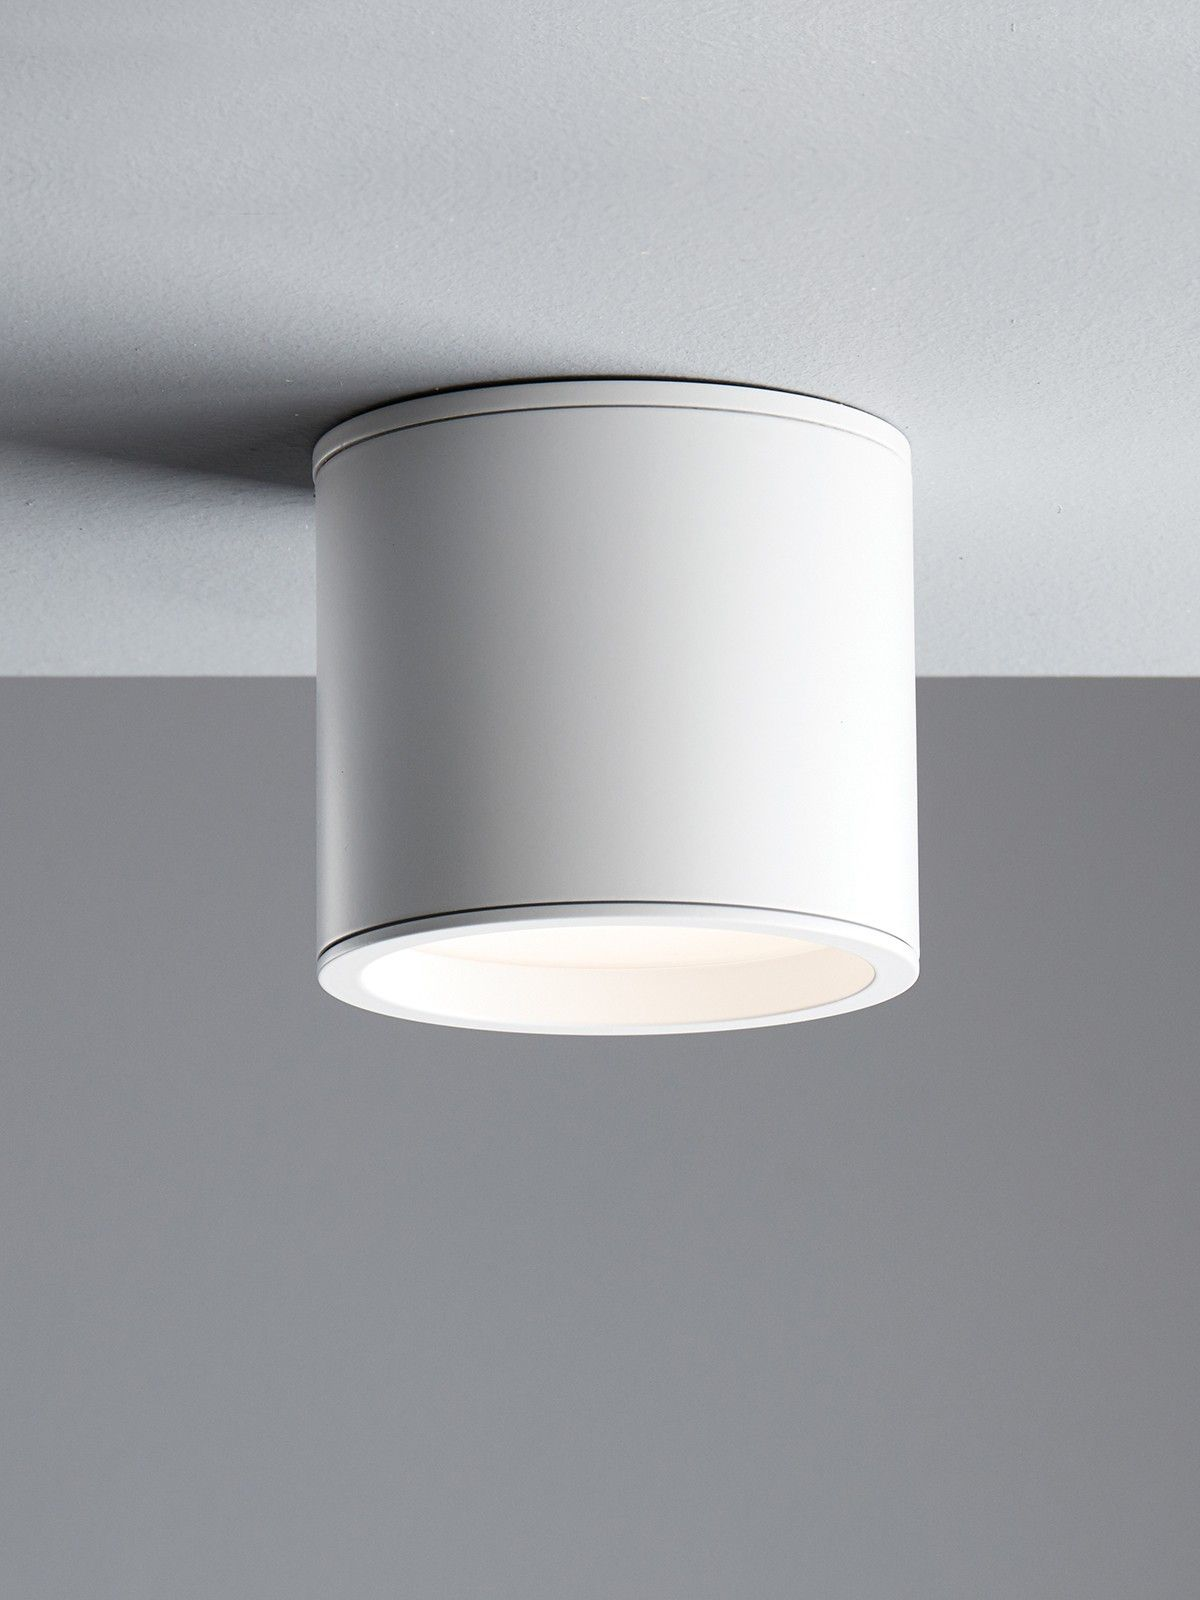 Ledlux Surface 80mm Dimmable Surface Mounted Downlight In White In 2020 Downlights Beacon Lighting Light Installation